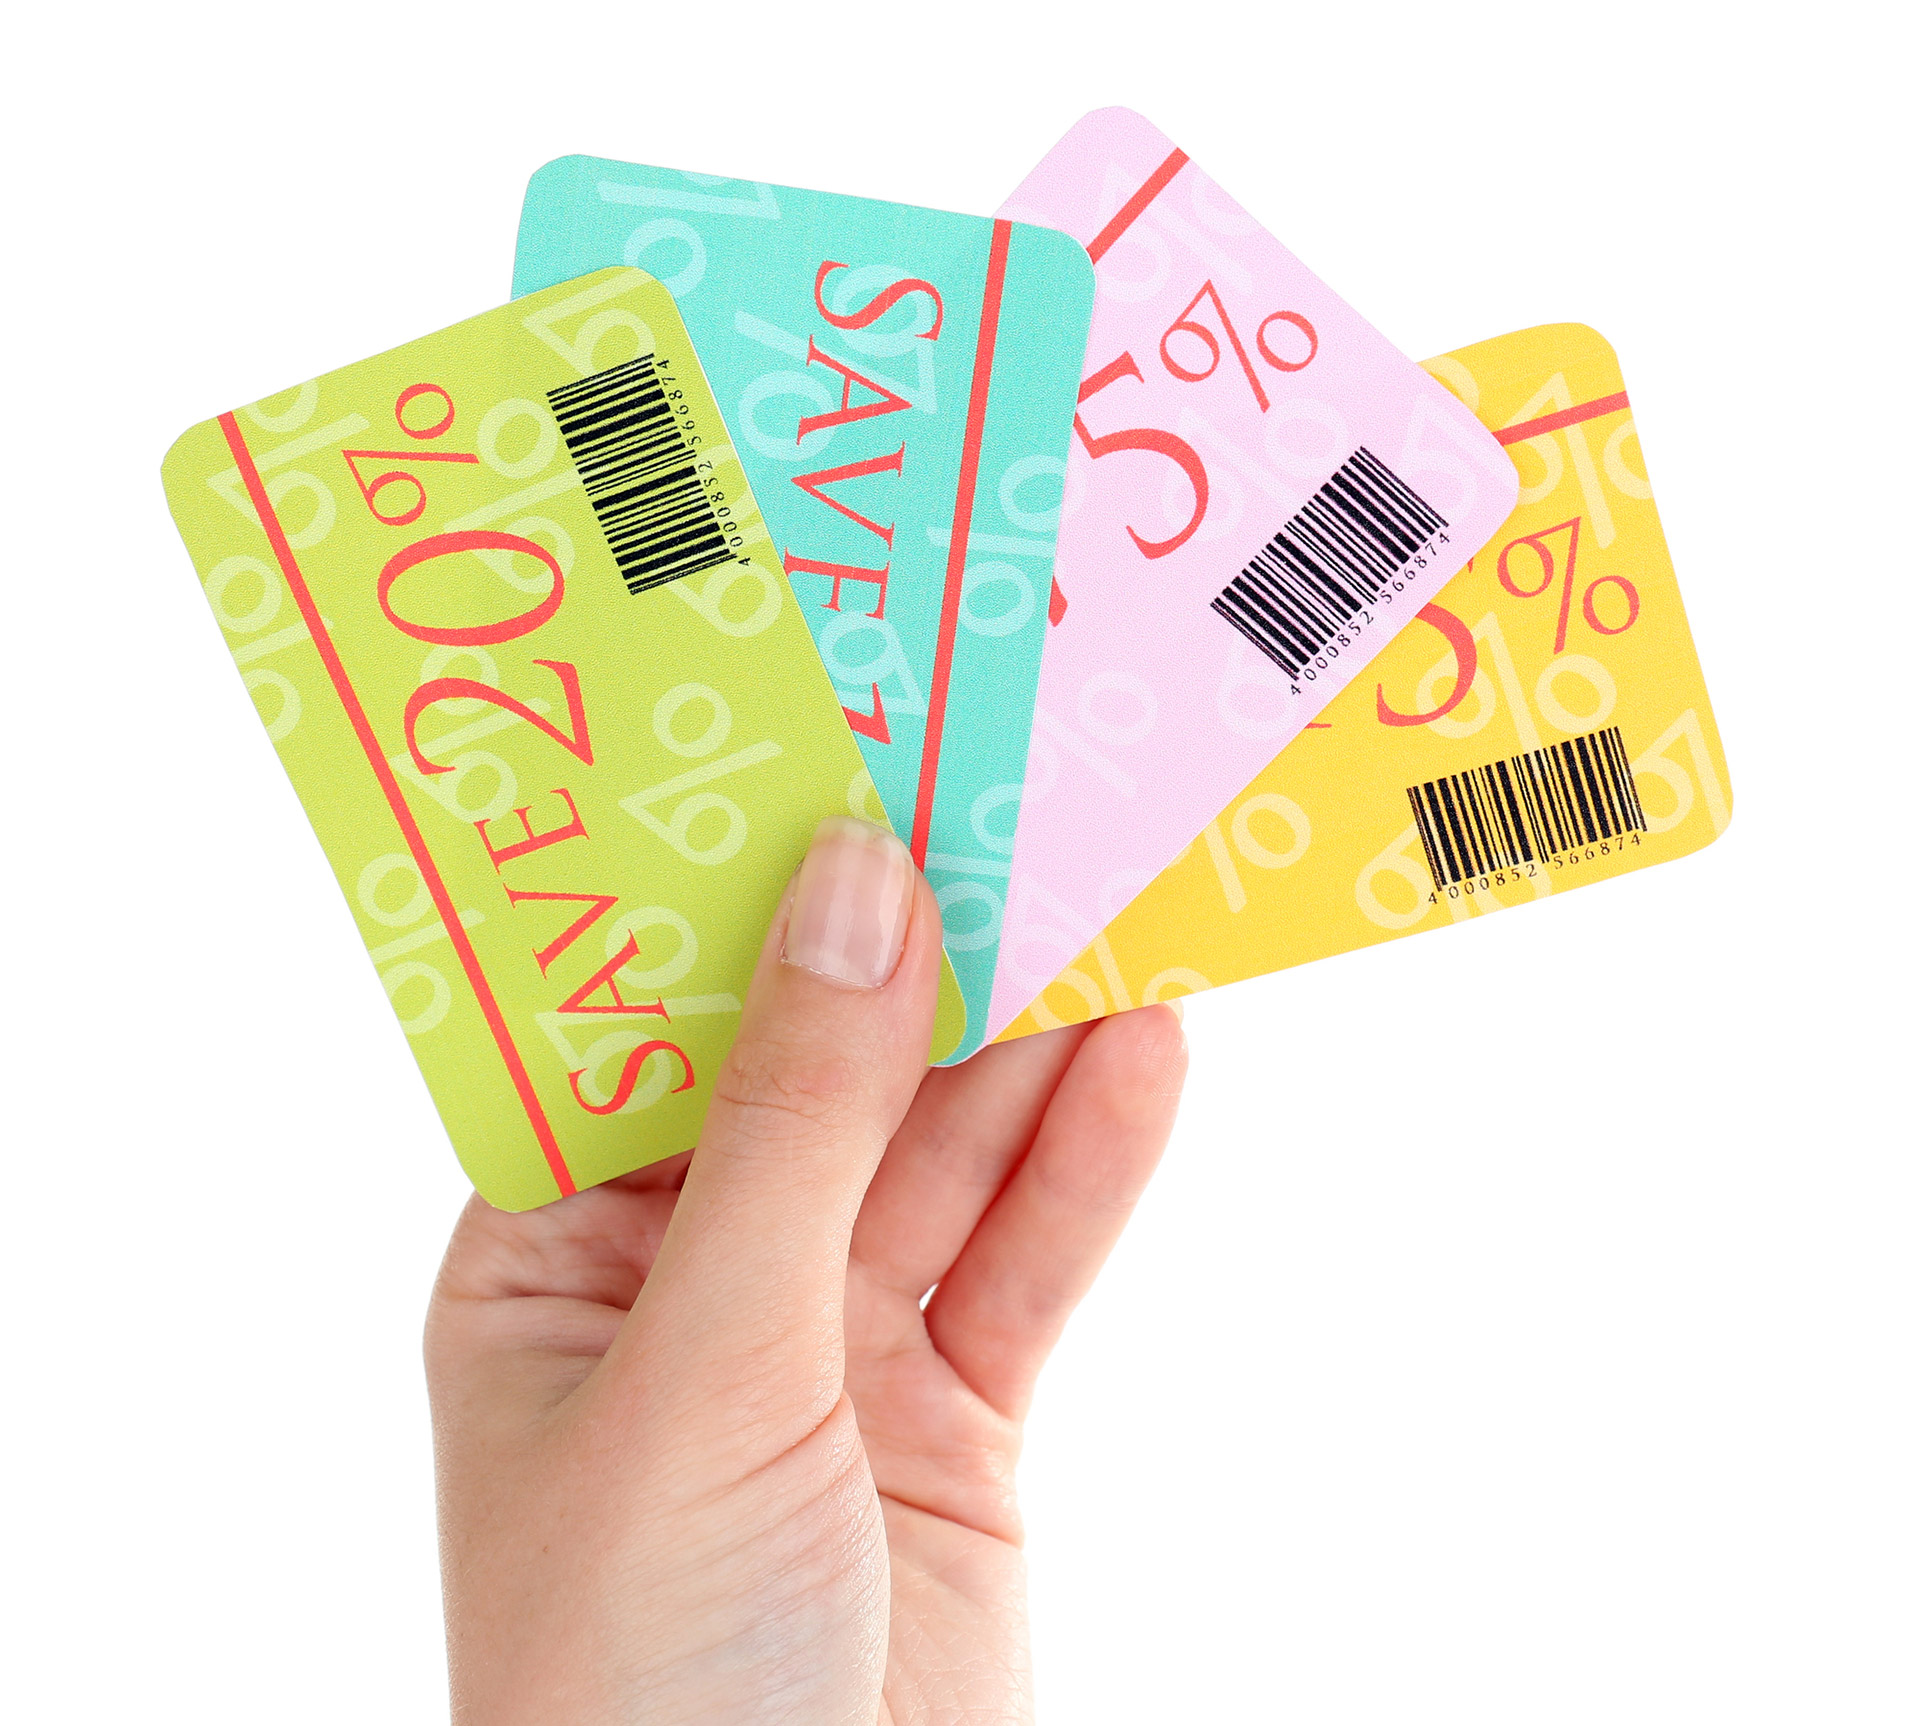 How to get money off vouchers into the hands of mums?